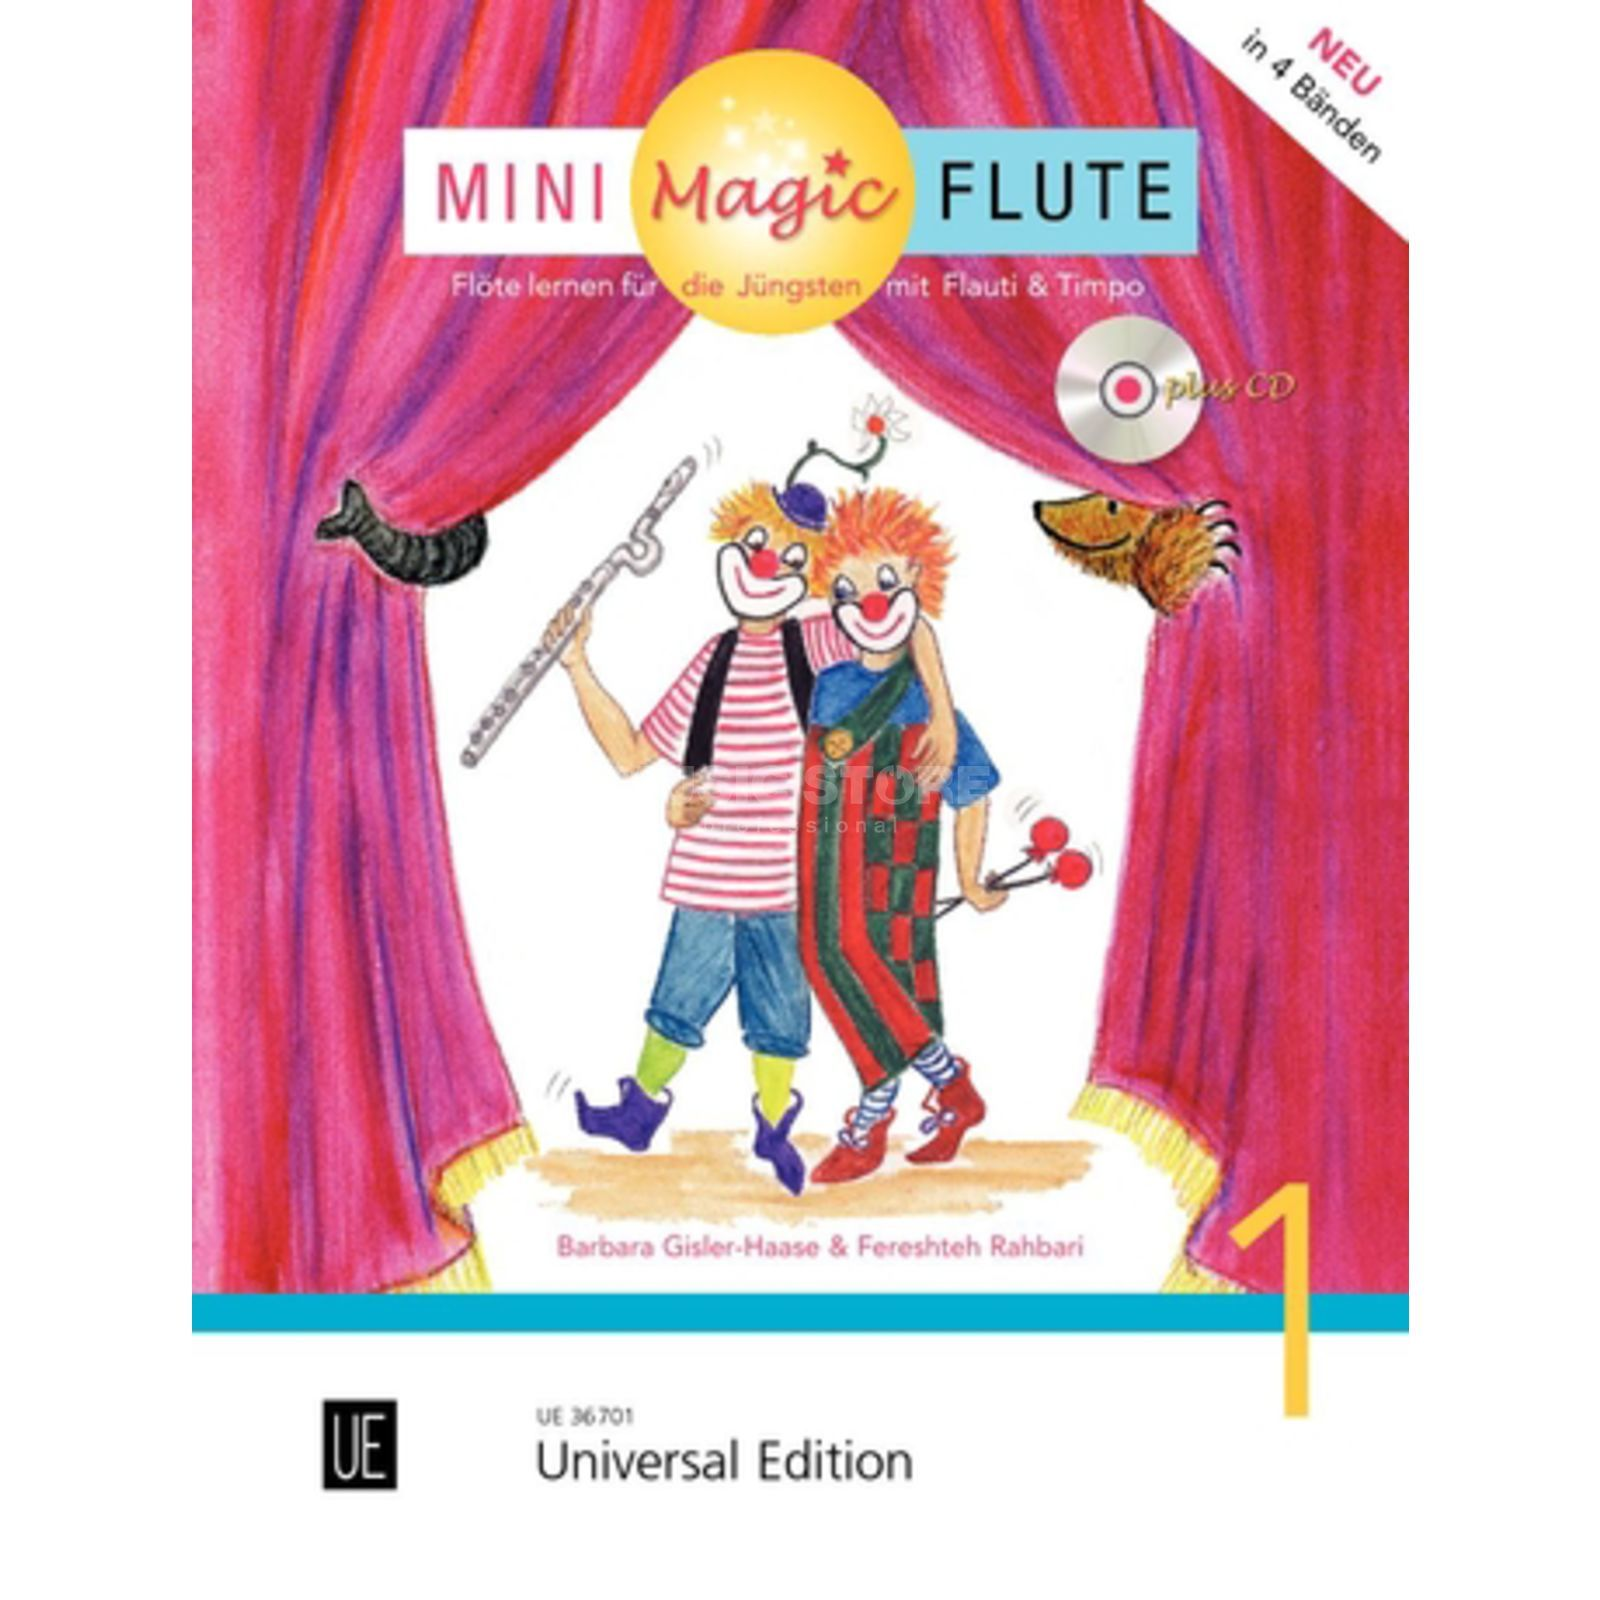 Universal Edition Mini Magic Flute 1 Barbara Gisler-Haase, Flöte/CD Produktbild